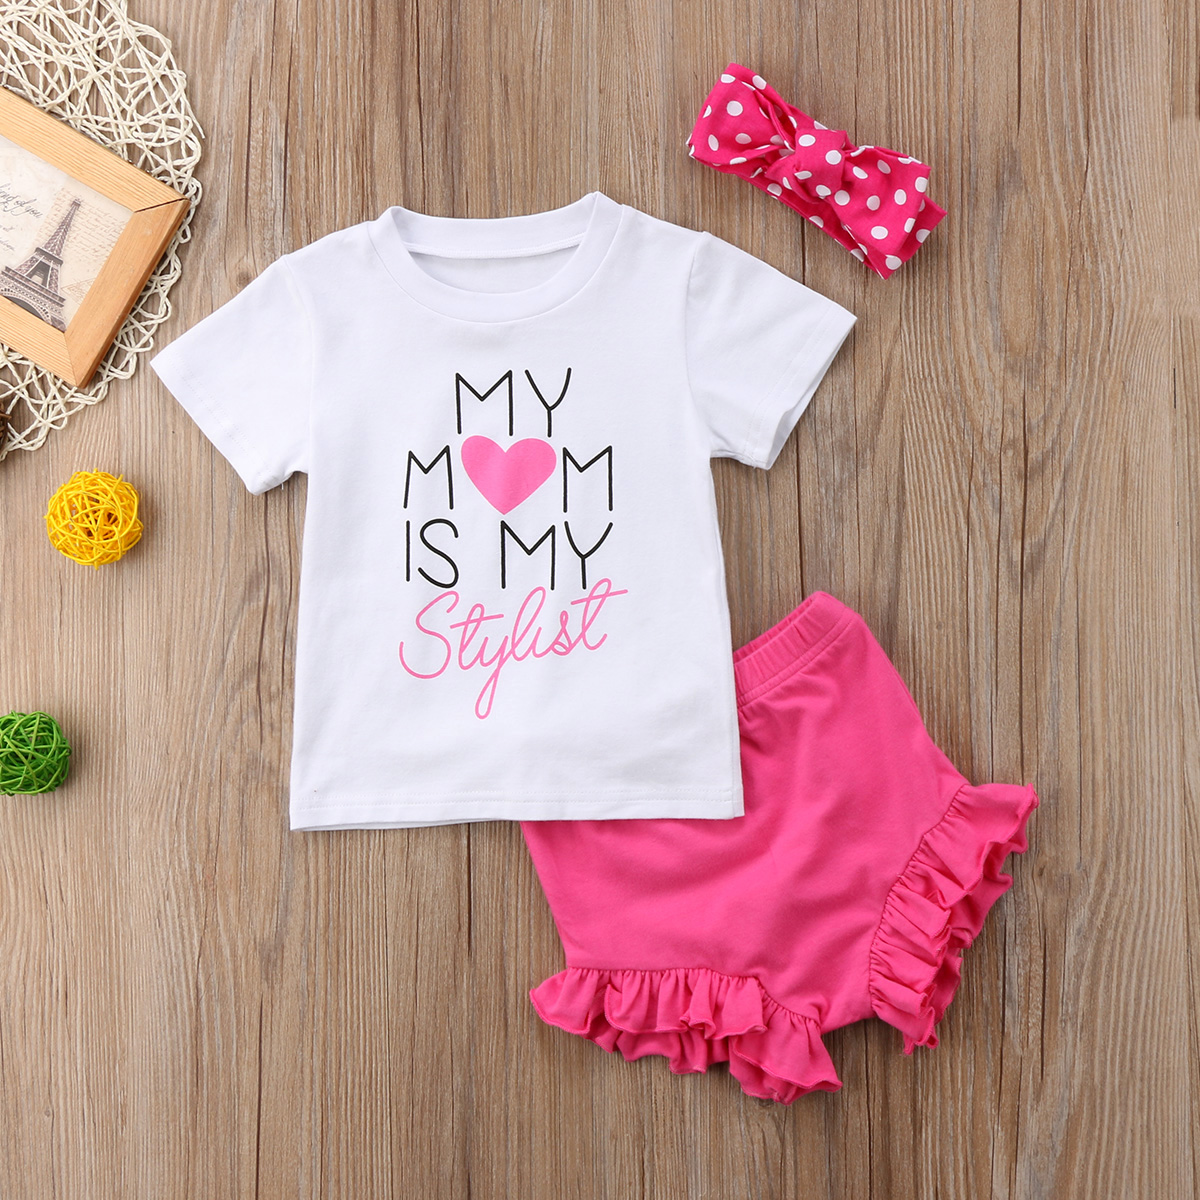 Generous Cute Baby Girl Heart Bowknot Flying Sleeve T-shirt Top Mother & Kids Plaid Shorts Outfit Set Buy Now Girls' Clothing